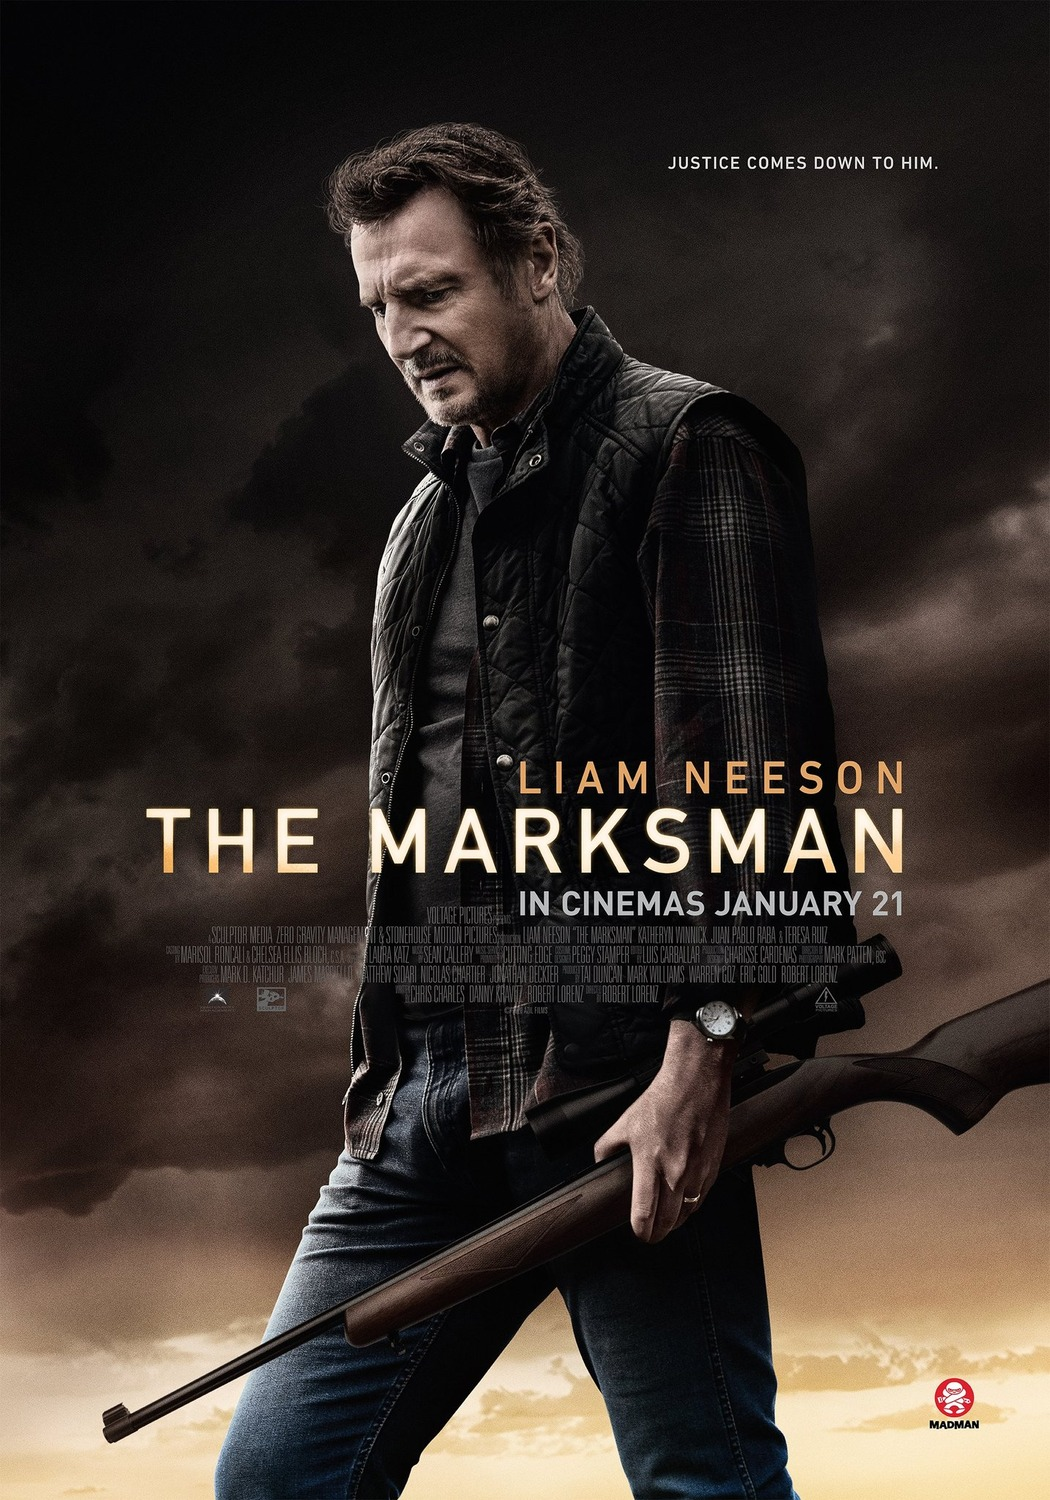 The Marksman hits its mark at the weekend box office ...